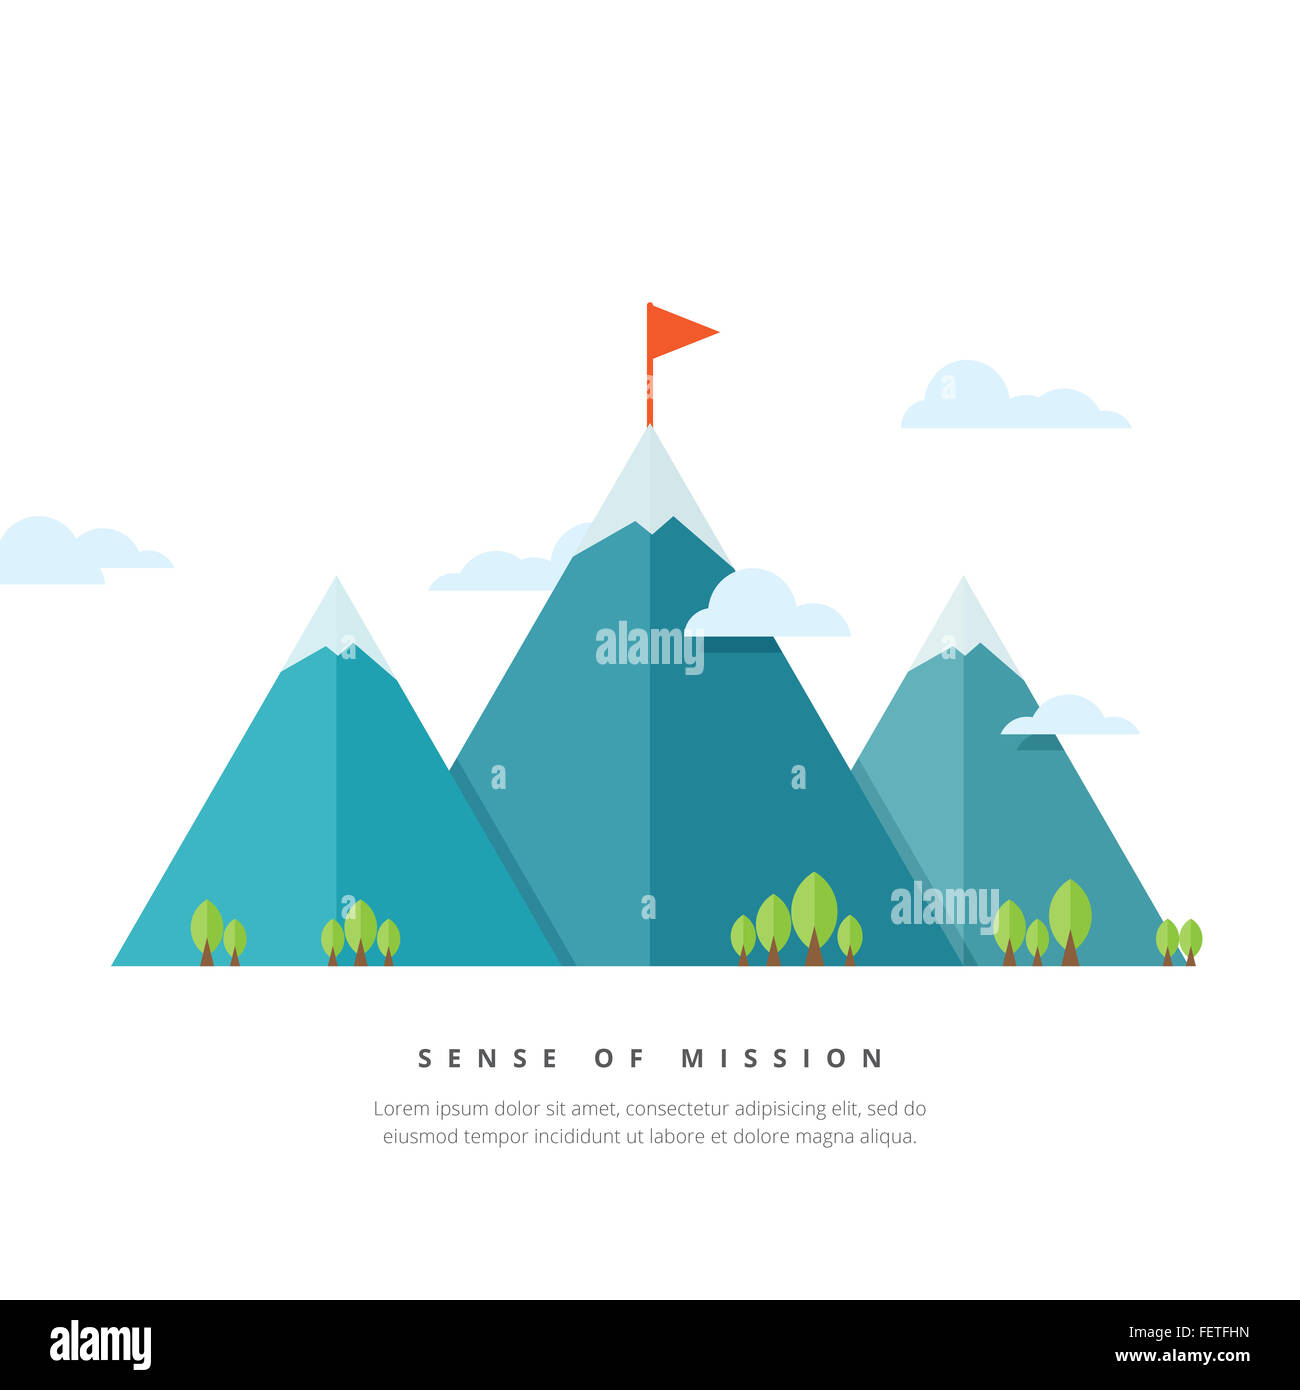 Vector illustration of mountains with flag pole. - Stock Image